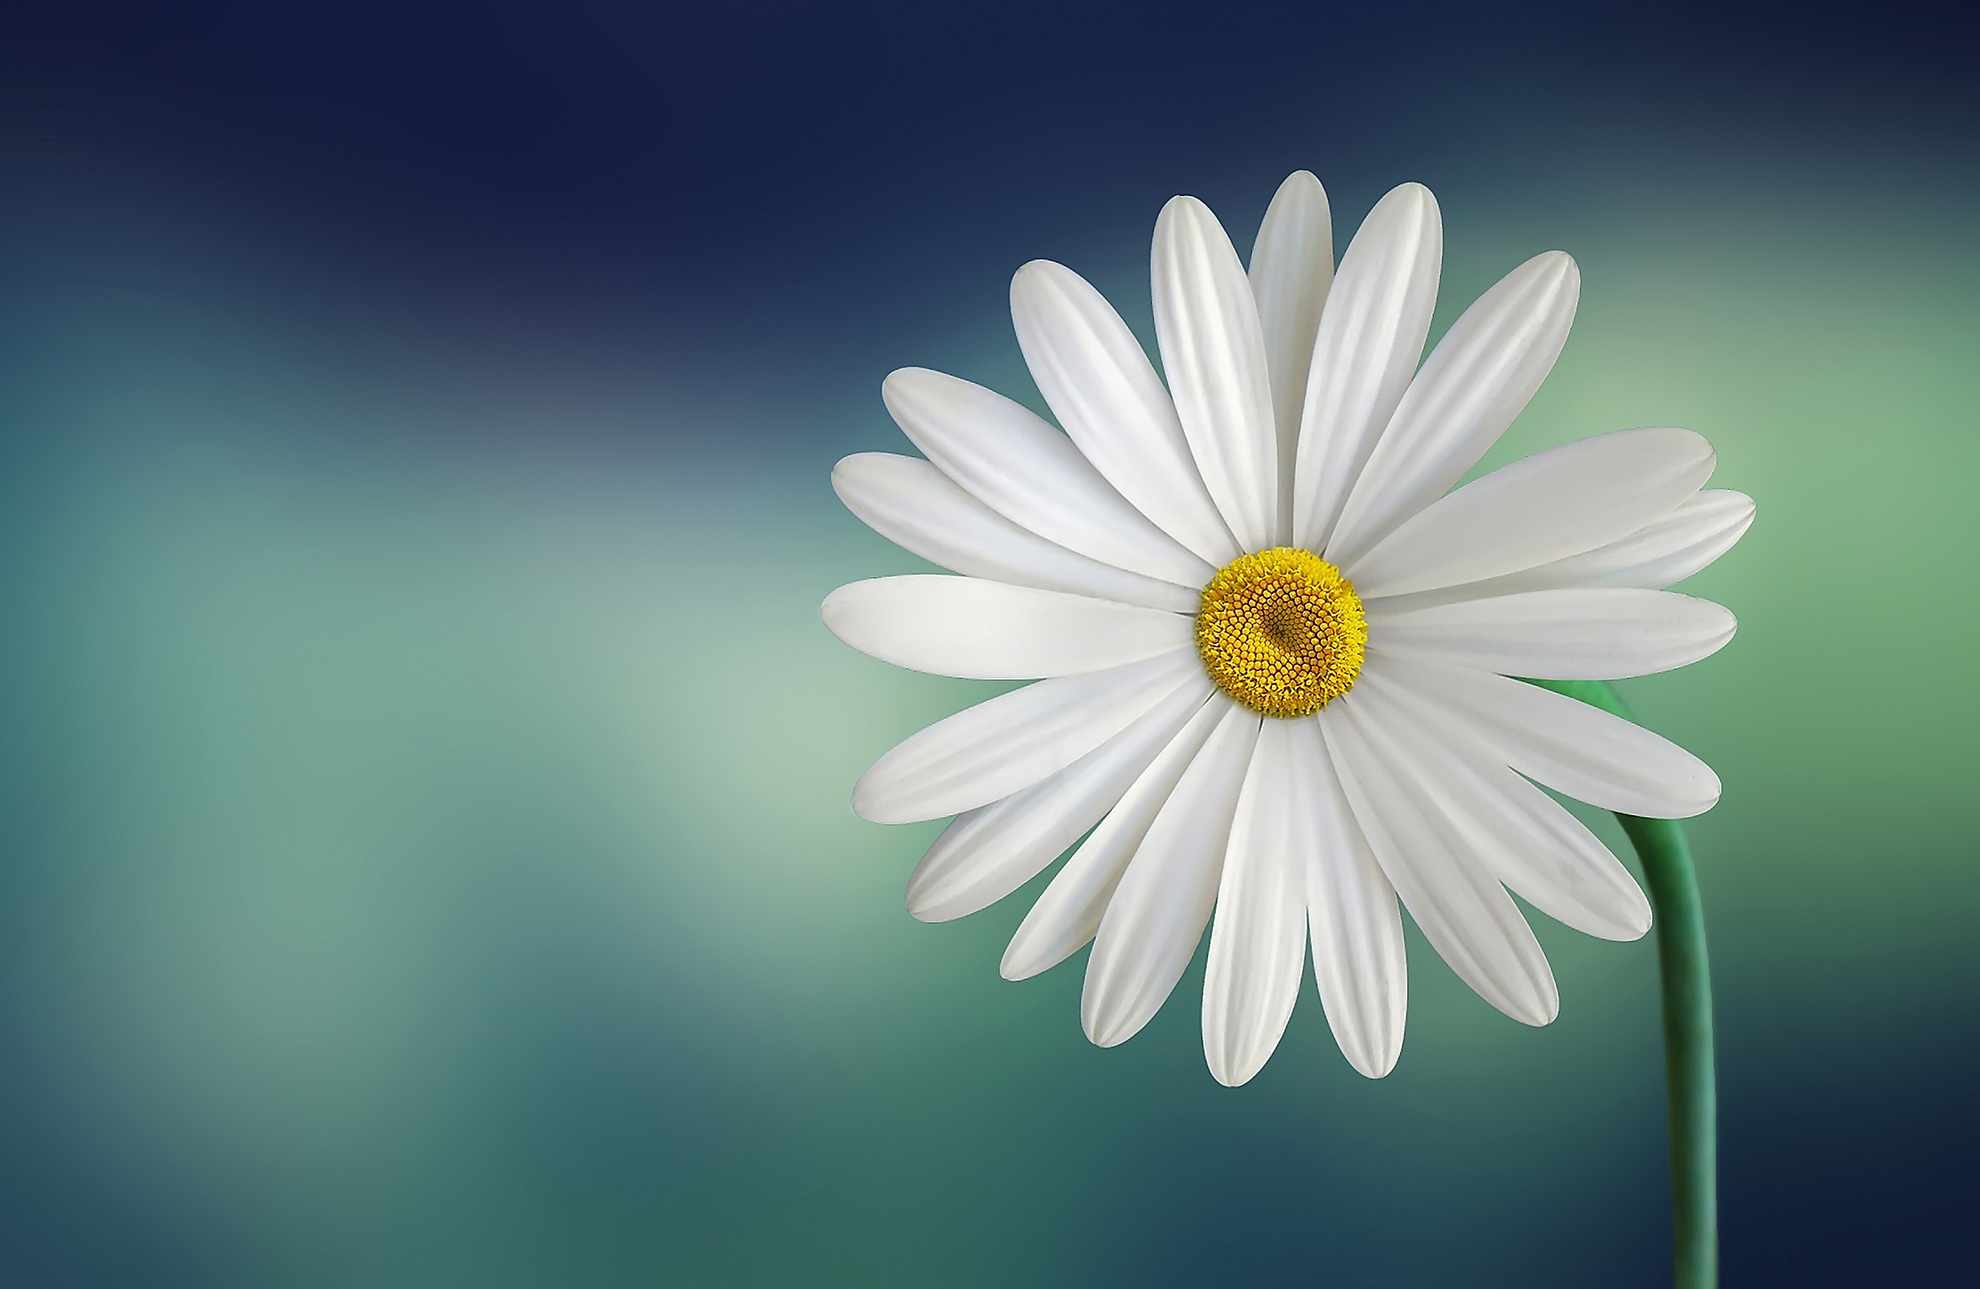 Hd wallpaper image - White And Yellow Flower With Green Stems